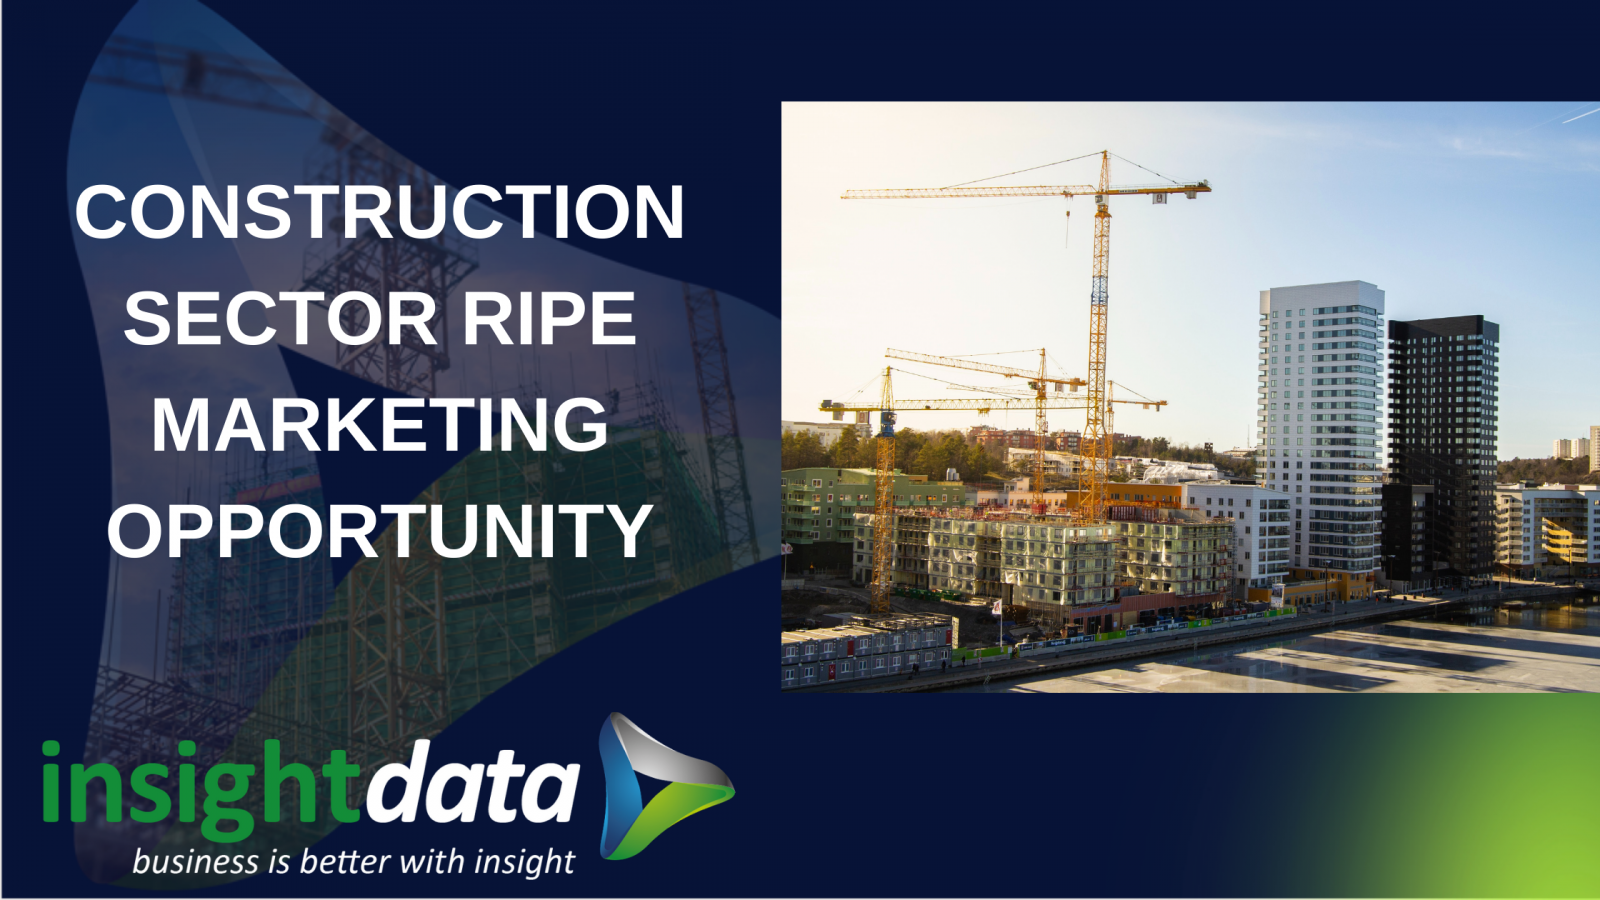 Construction sector ripe marketing opportunity article representing Insight Data